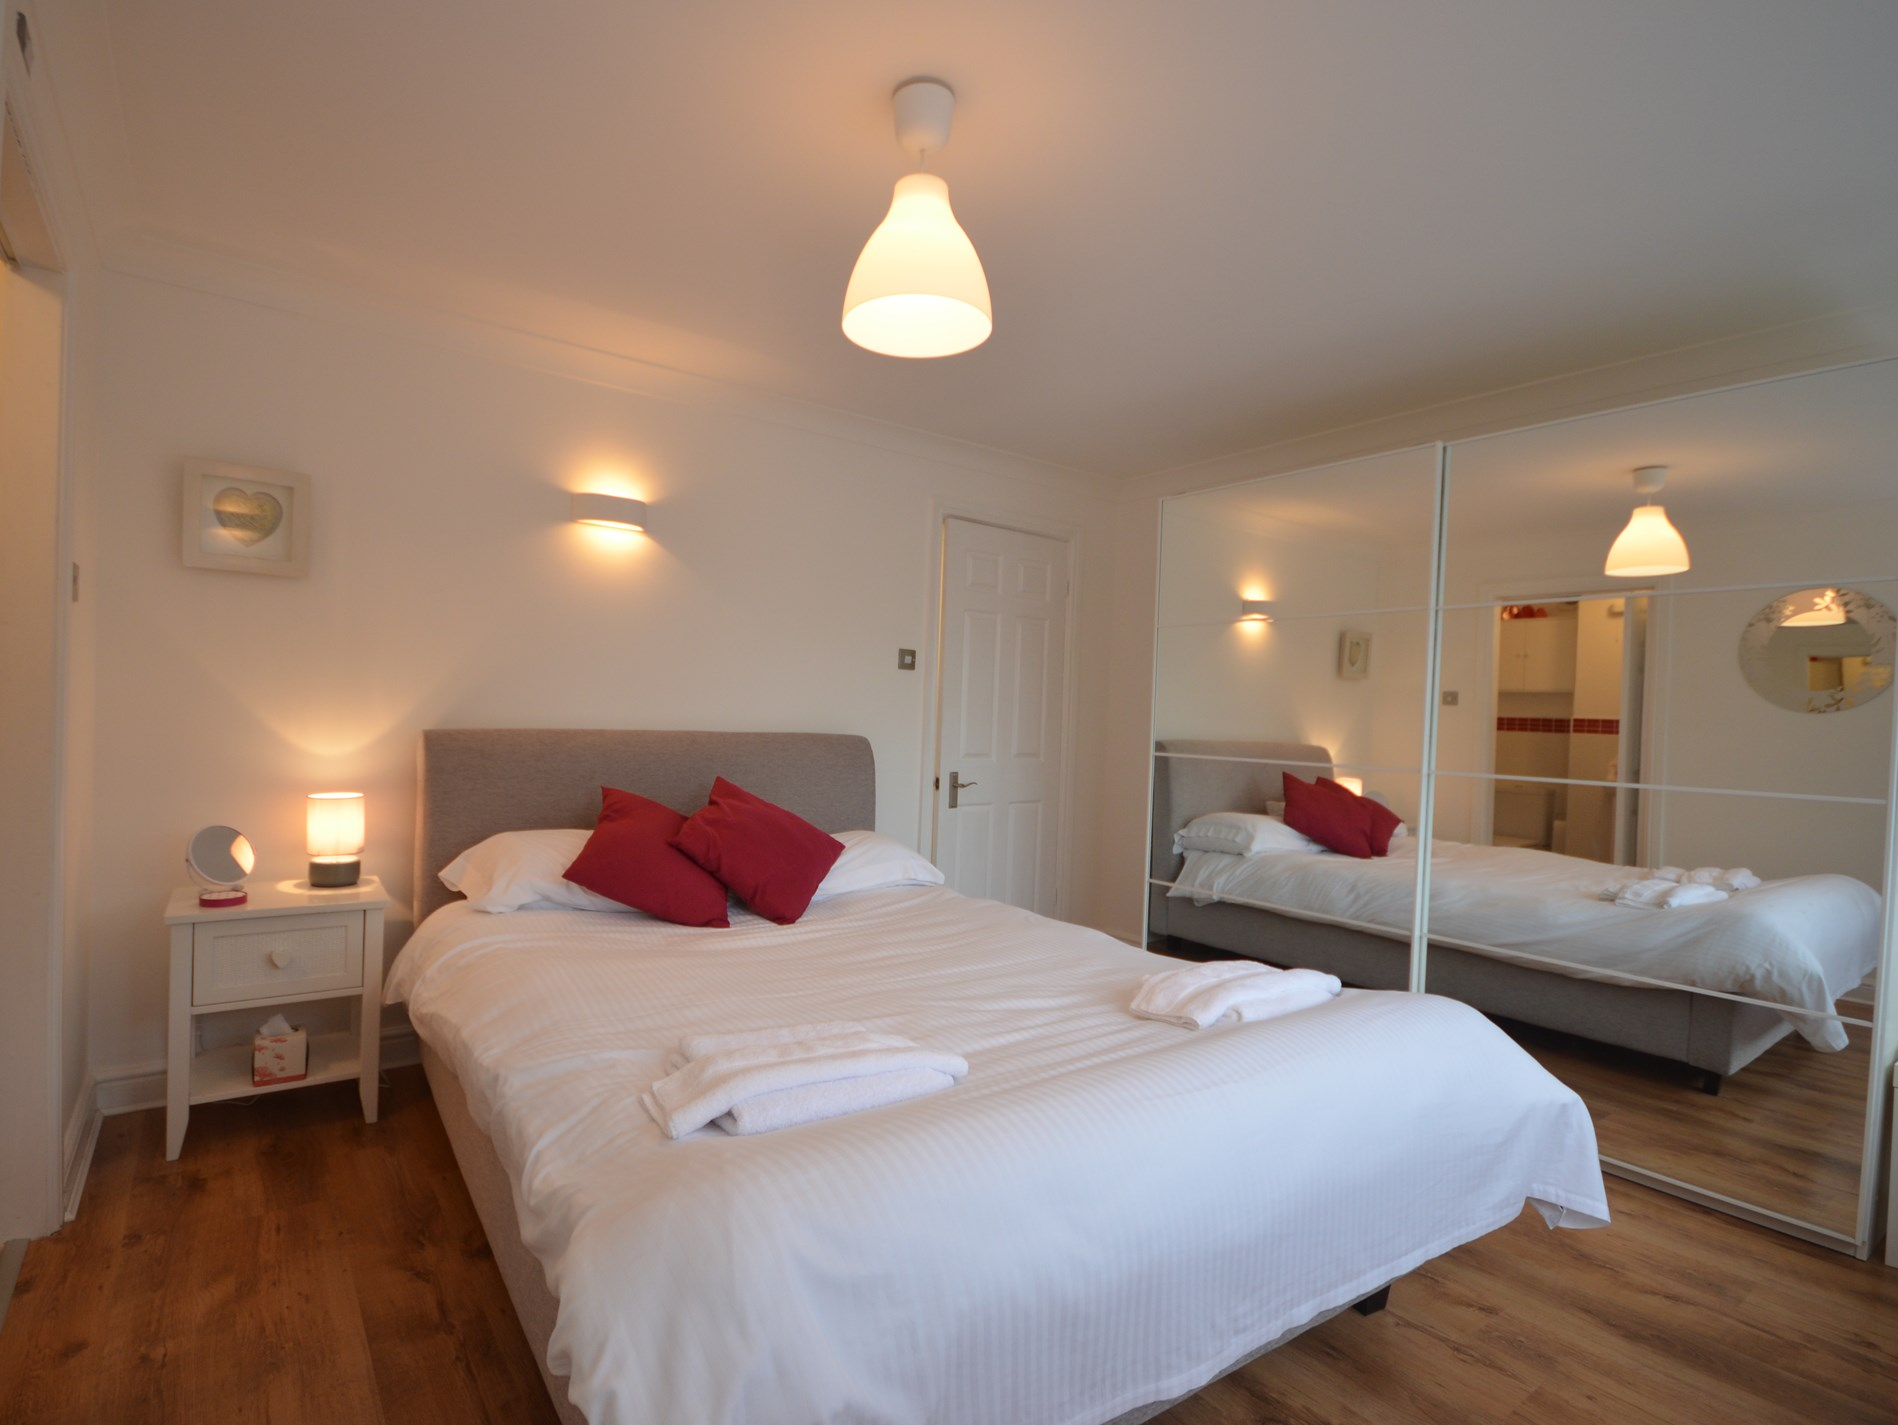 Double bedroom with en-suite and ample storage